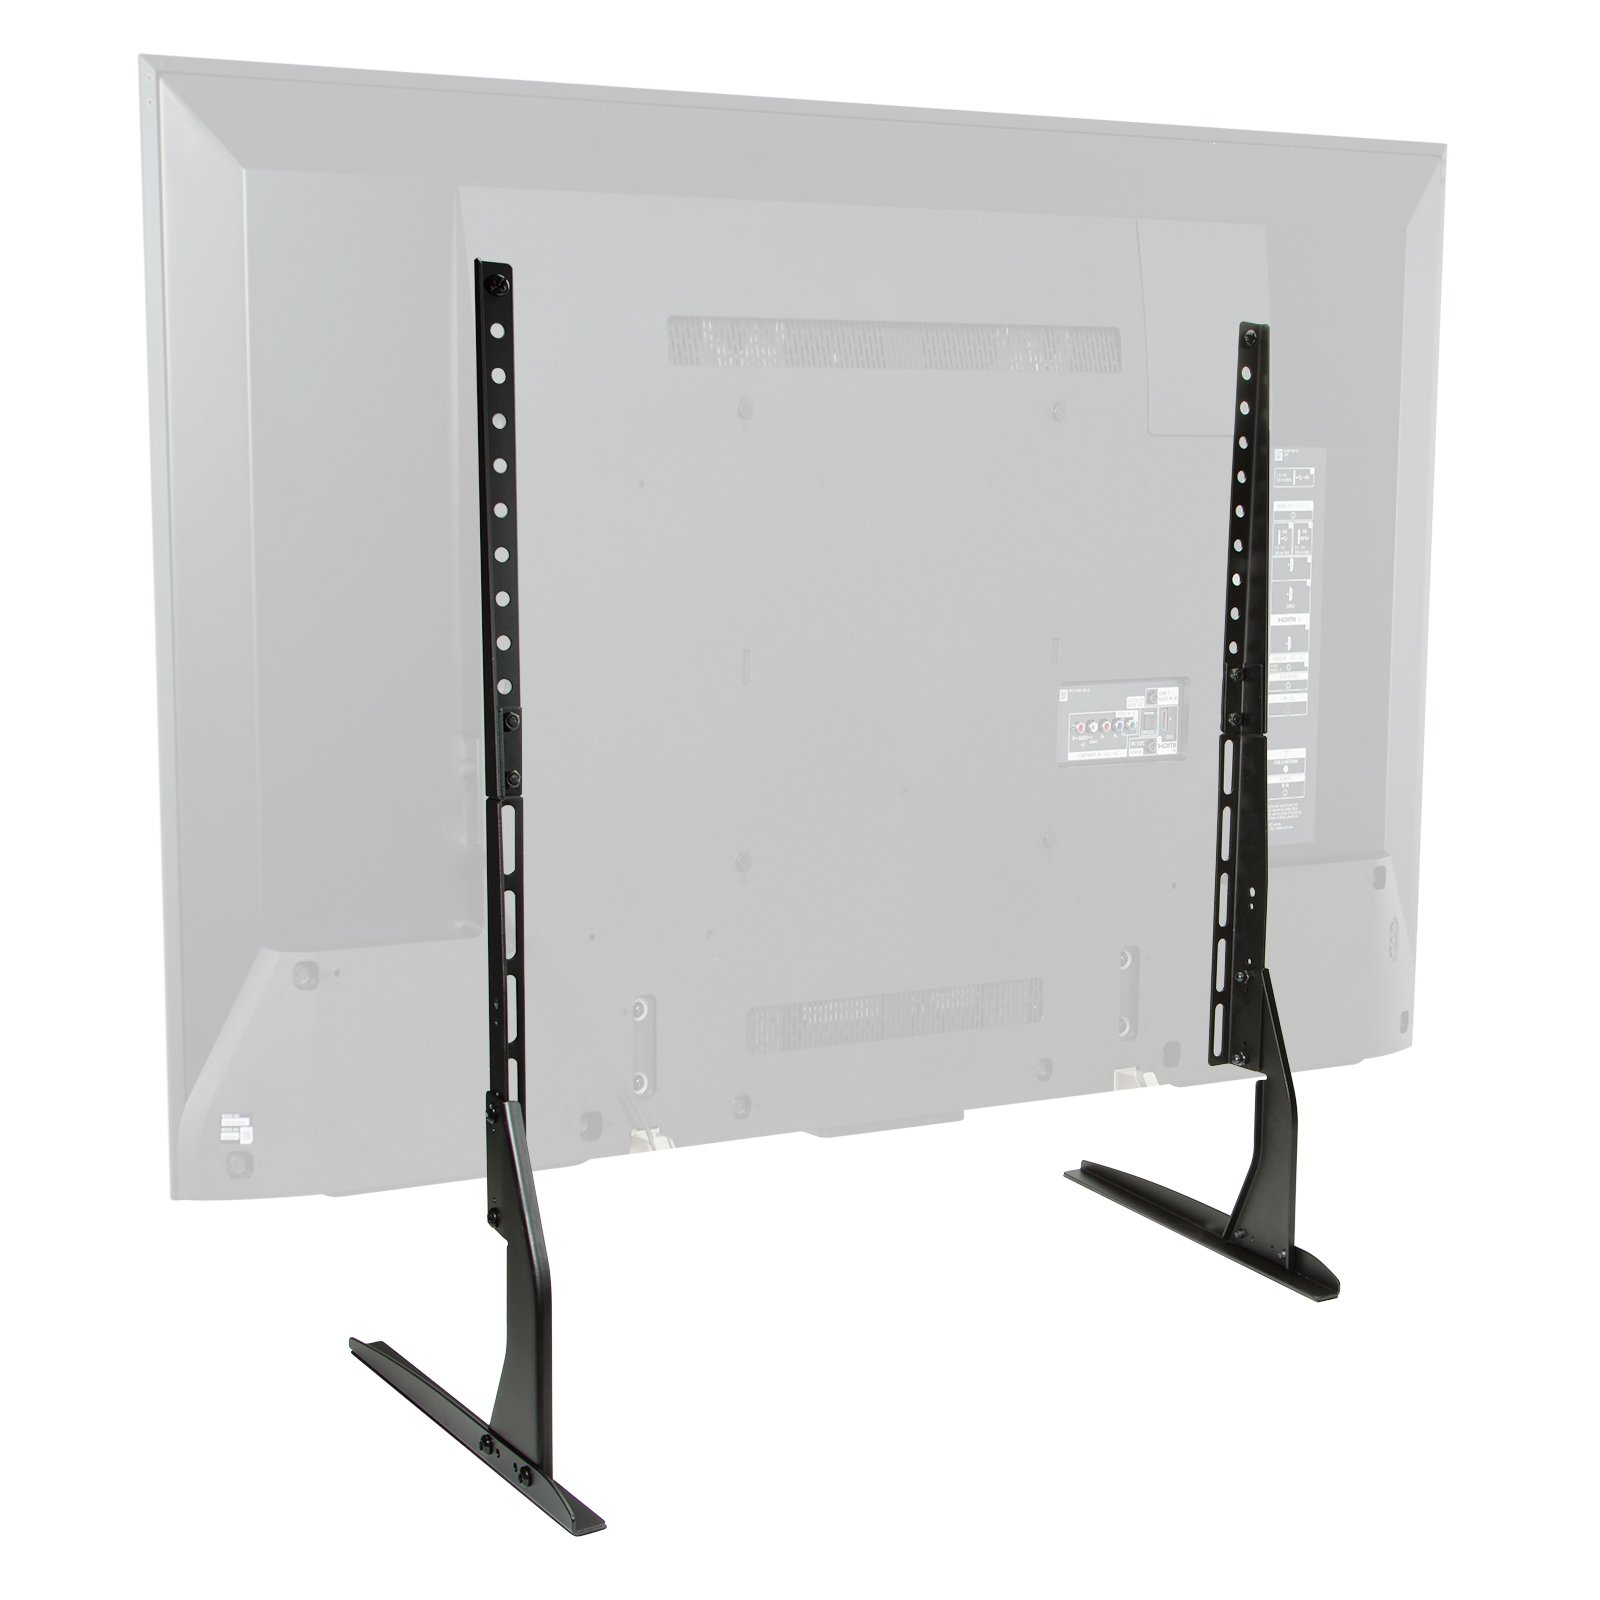 Mount Factory Modern Tabletop TV Stand - Universal Flat Screen Base Replacement for 24'' 32'' 40'' 42'' 50'' 55'' 60'' 65'' Screens